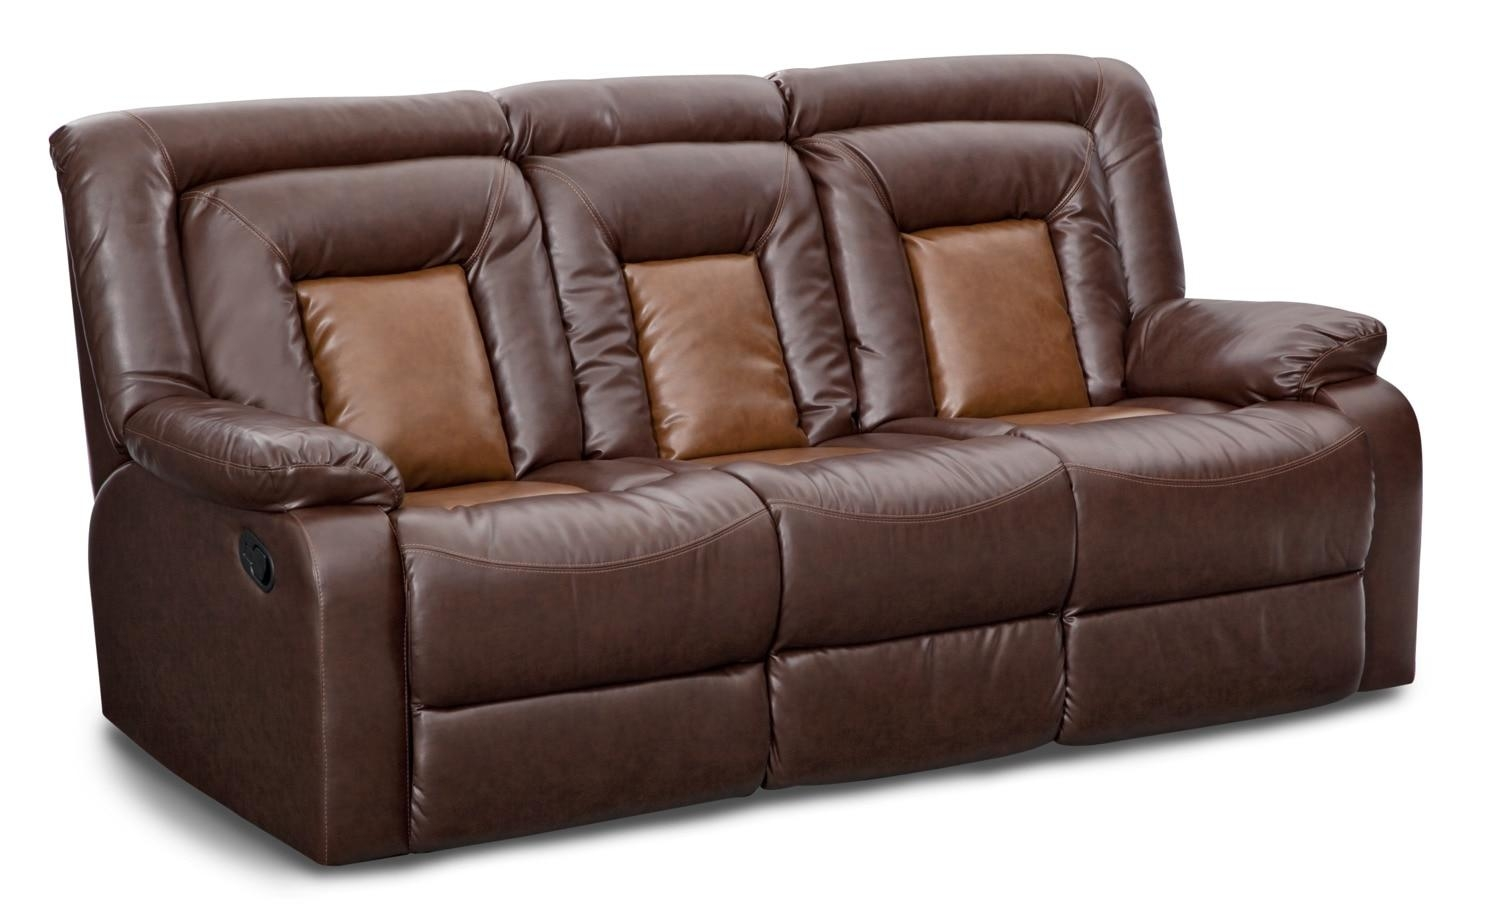 Furniture: Couch Covers For Reclining Sofa | Dual Reclining Sofa Within Recliner Sofa Slipcovers (View 12 of 20)